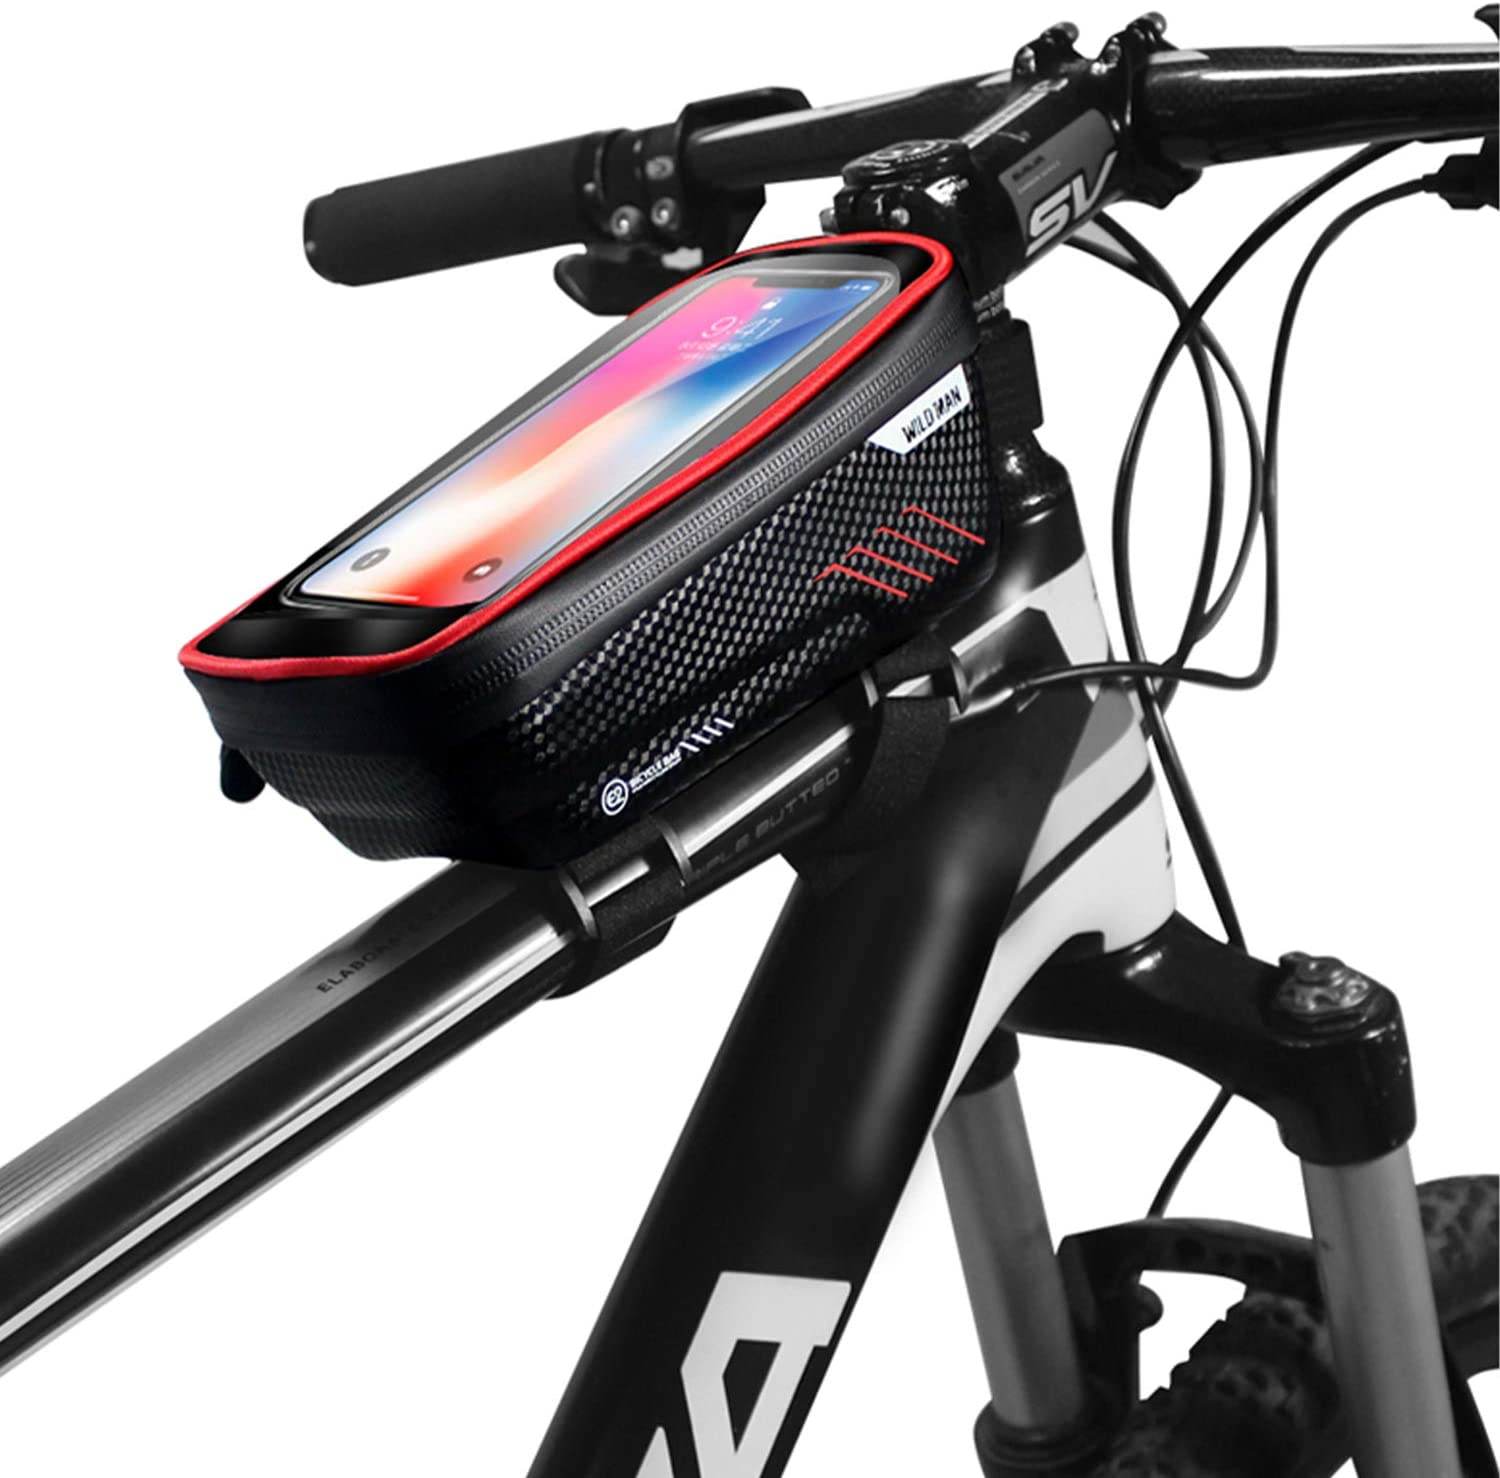 Bike Phone Front Frame Bag,Waterproof Bike Pouch Bag-Bicycle Top Tube Cycling Phone Mount with 6.5 Inch Touch Screen Bike Phone Holder Storage Bag for iPhone 7/8/11 Plus XS Max Galaxy S7 S8 S9